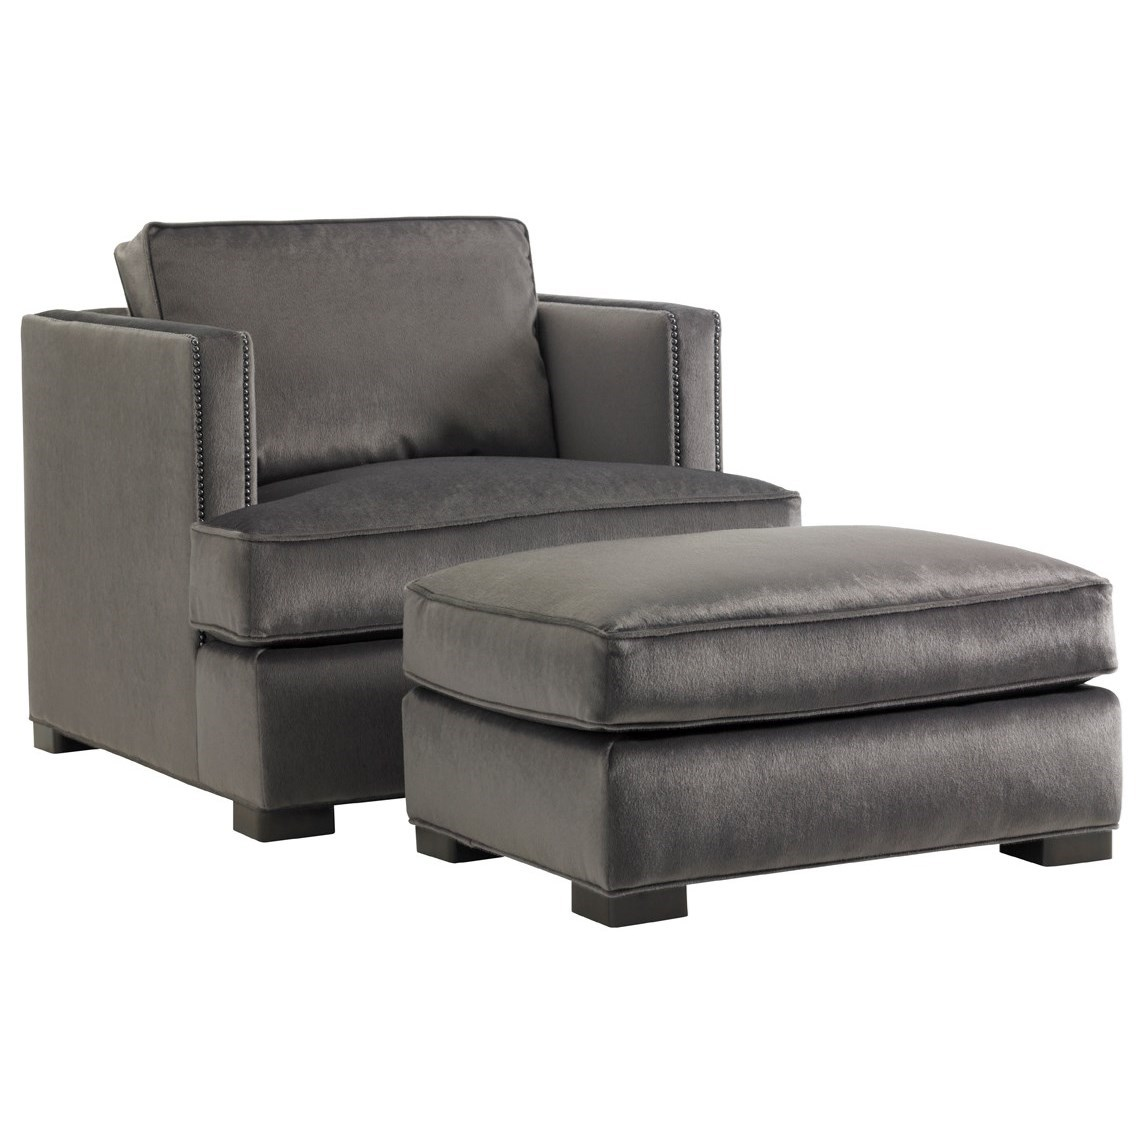 Lexington Upholstery Fillmore Chair and Ottoman by Lexington at Johnny Janosik